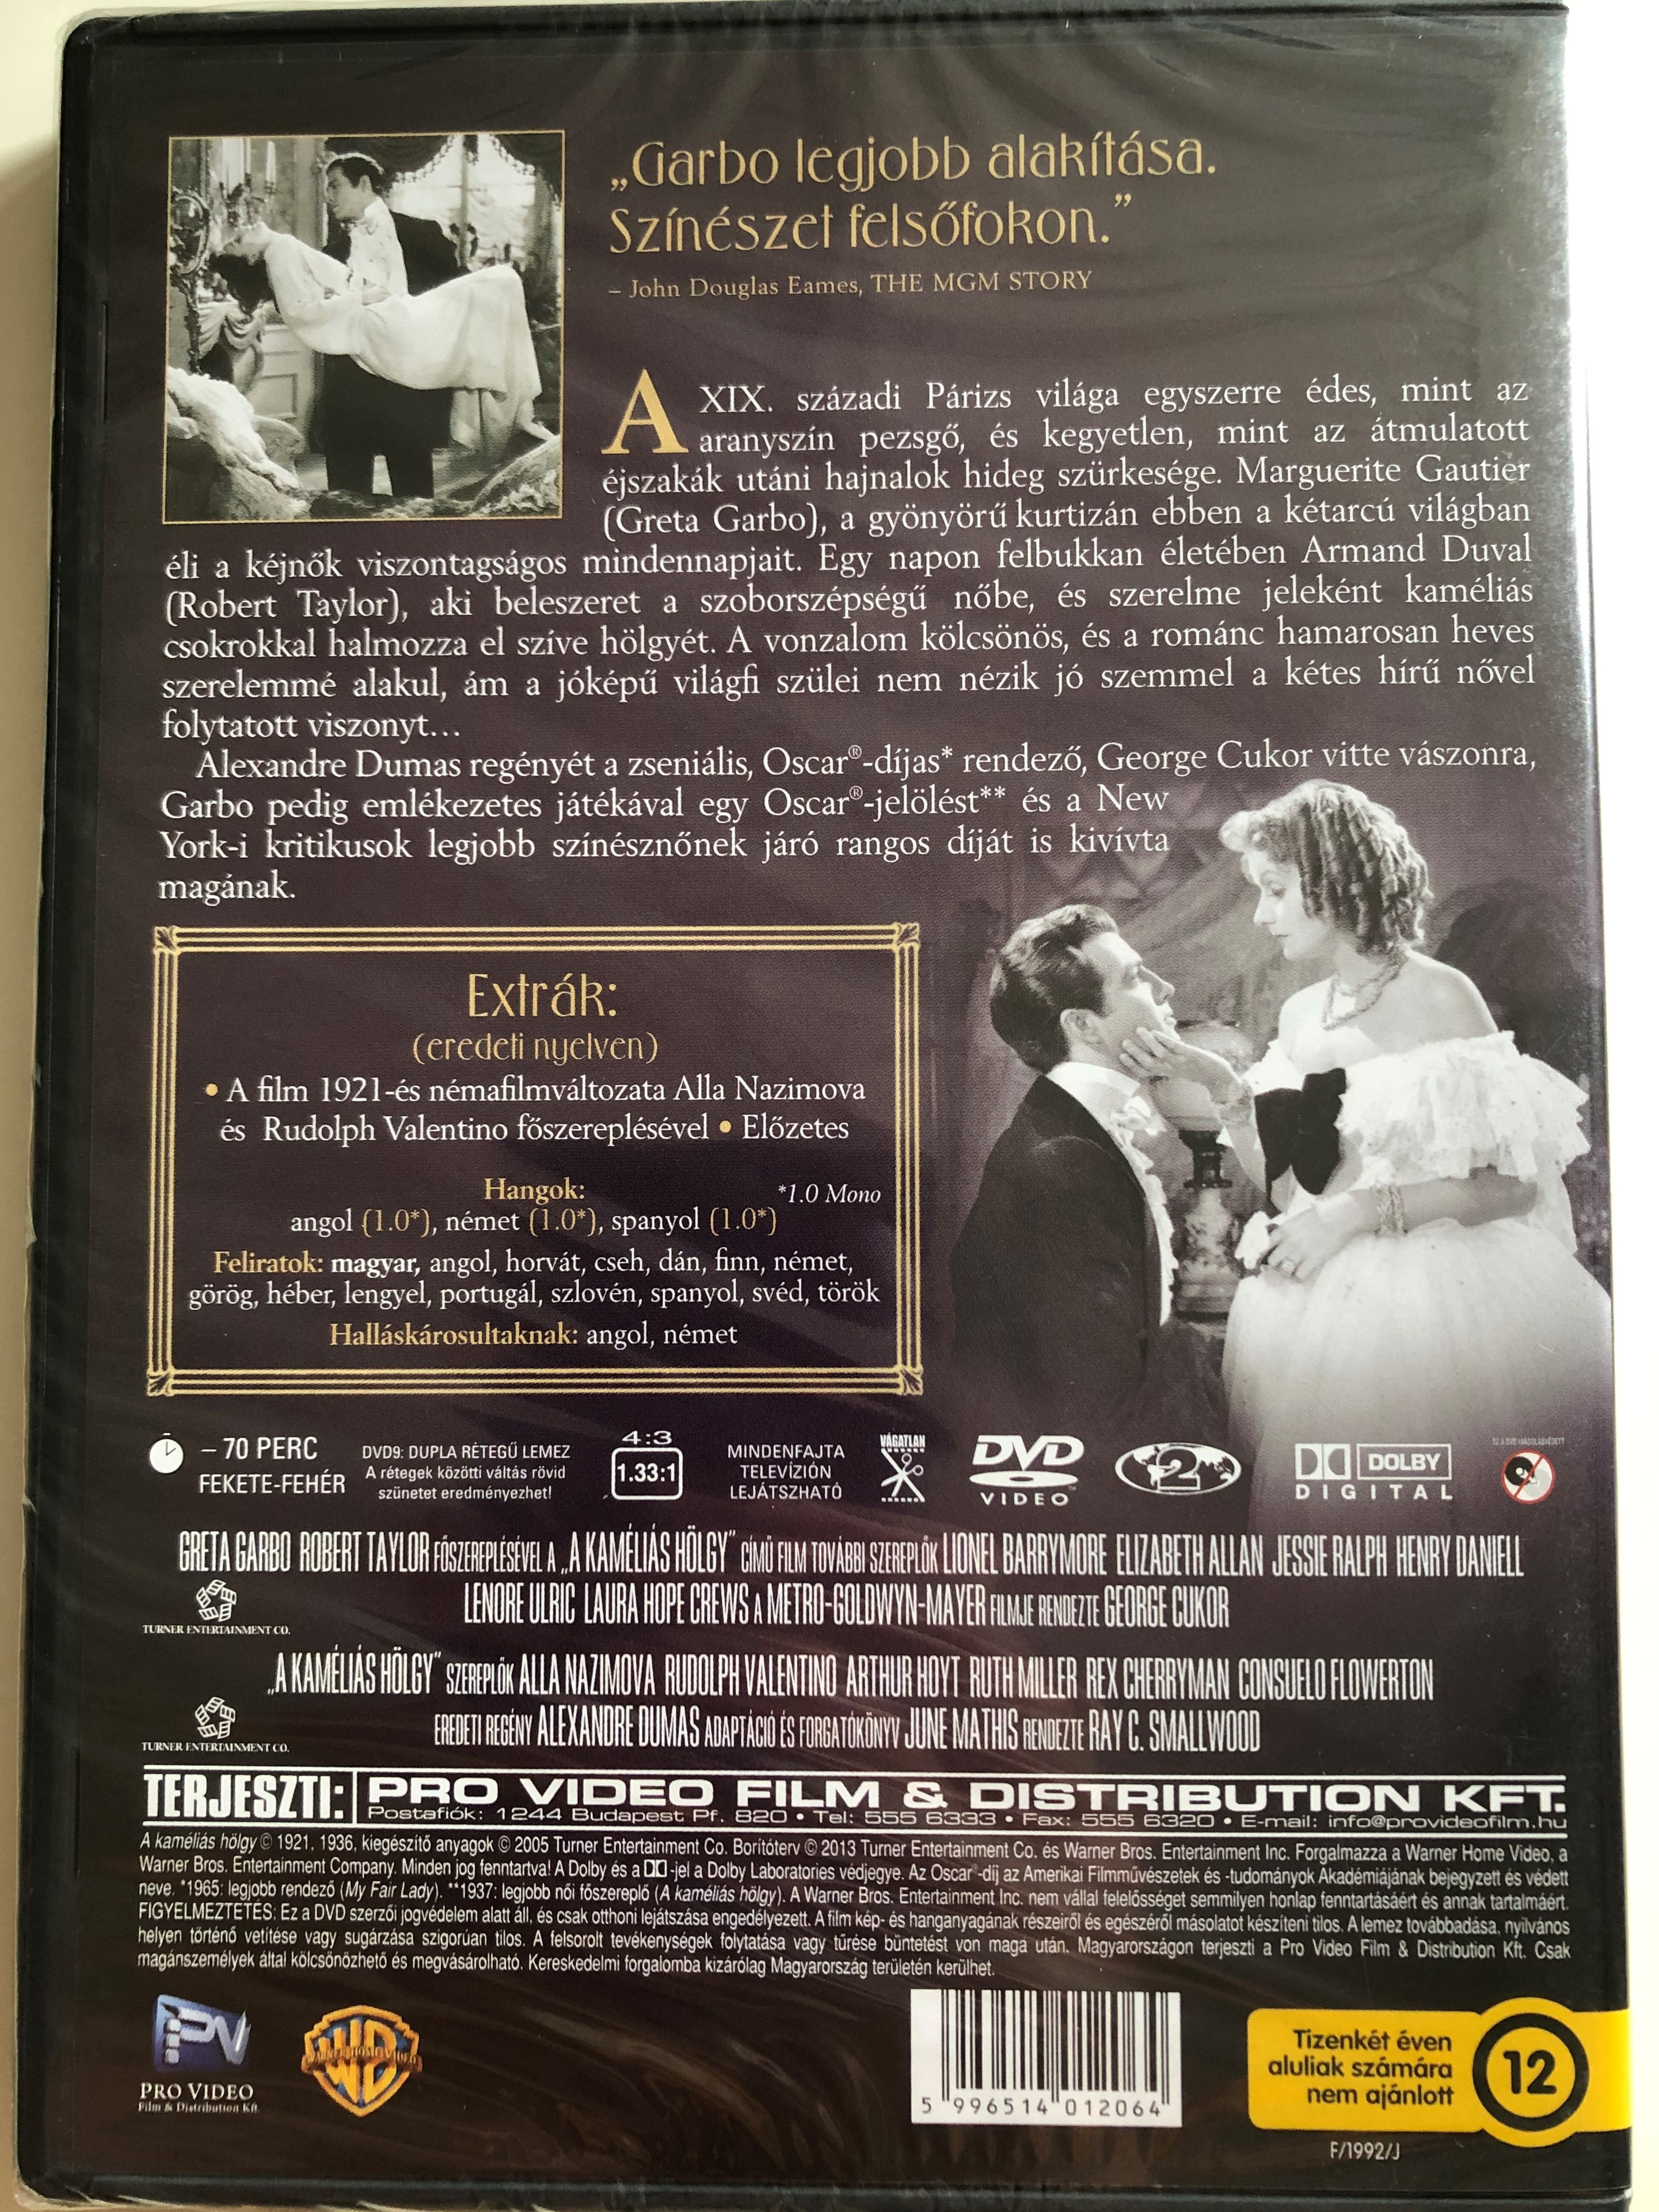 camille-dvd-1936-a-kam-li-s-h-lgy-directed-by-george-cukor-starring-greta-garbo-robert-taylor-lionel-barrymore-black-white-classic-2-.jpg